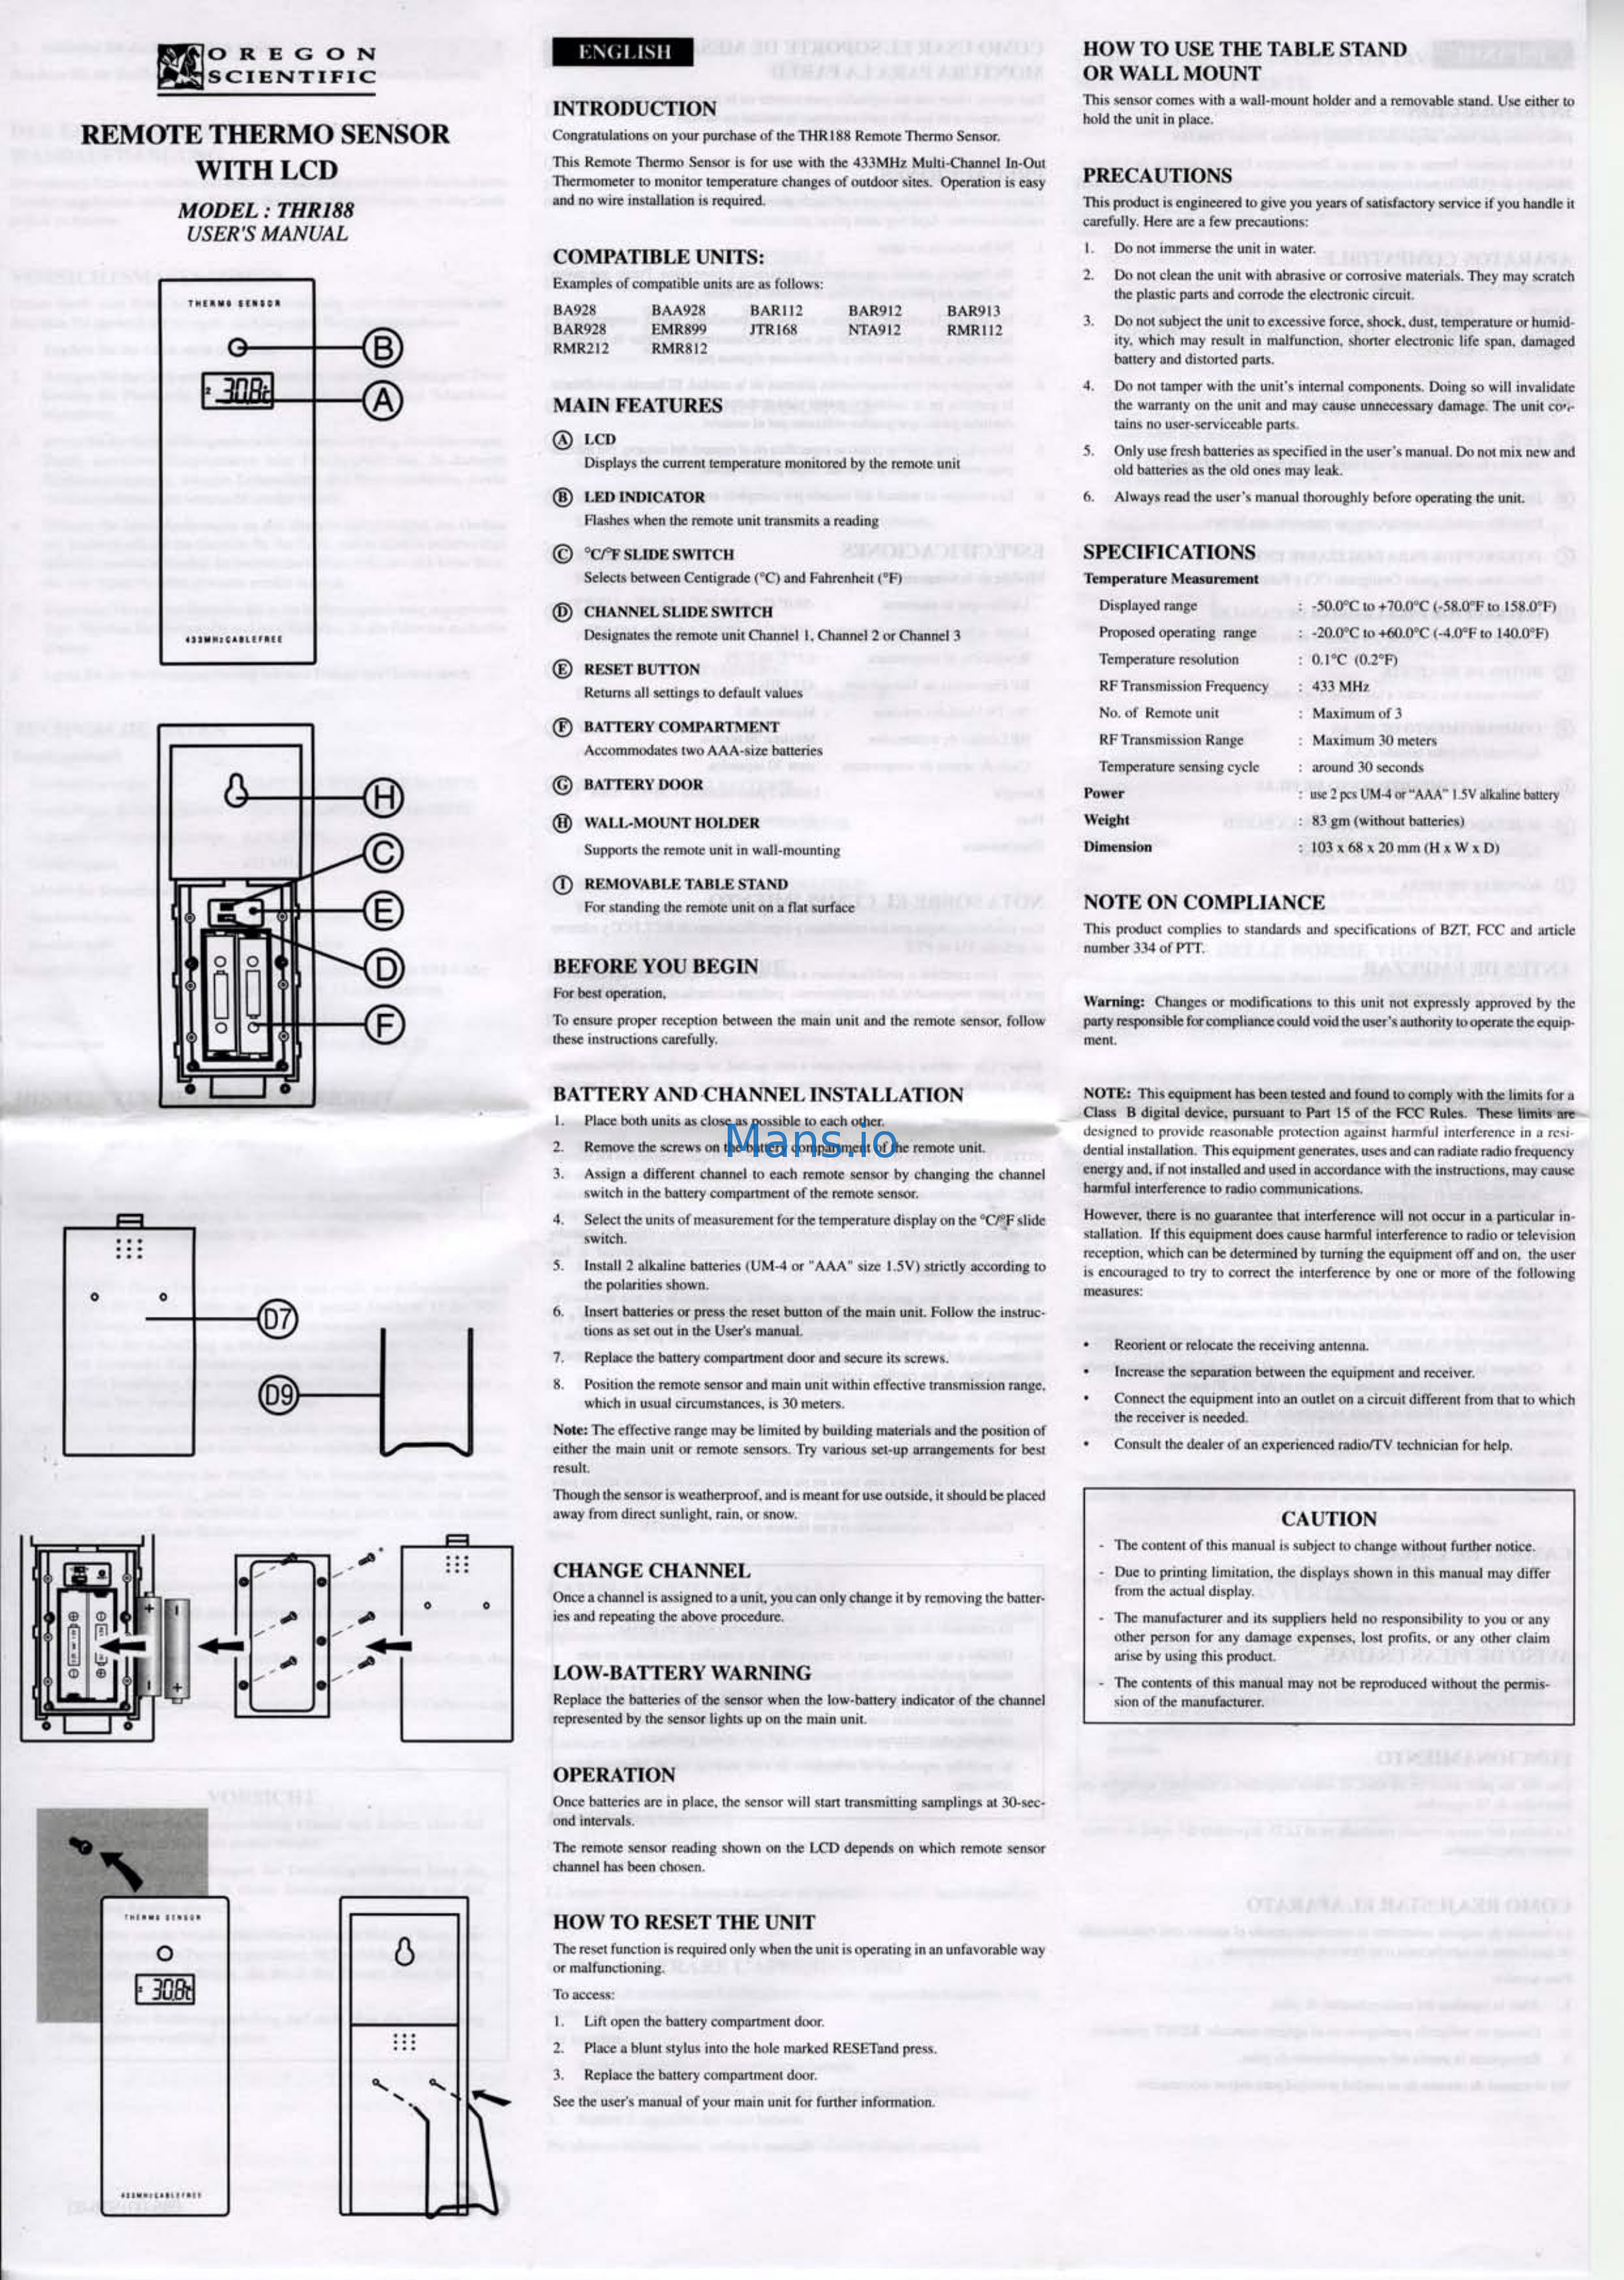 Oregon Scientific THR188 User Manual Page: 1